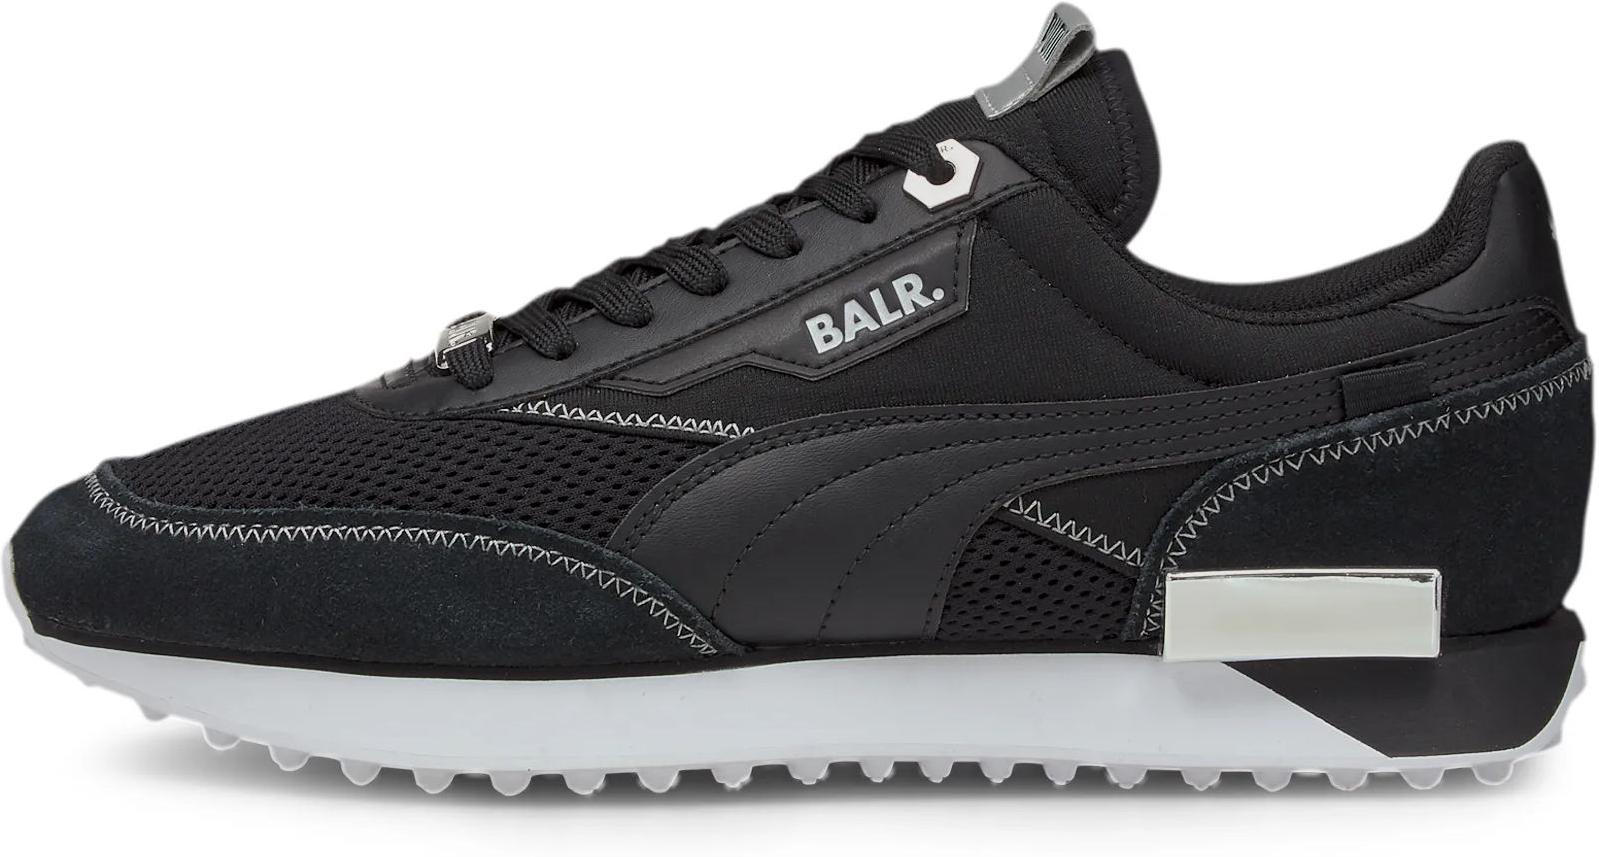 Zapatillas Puma Future Rider BALR